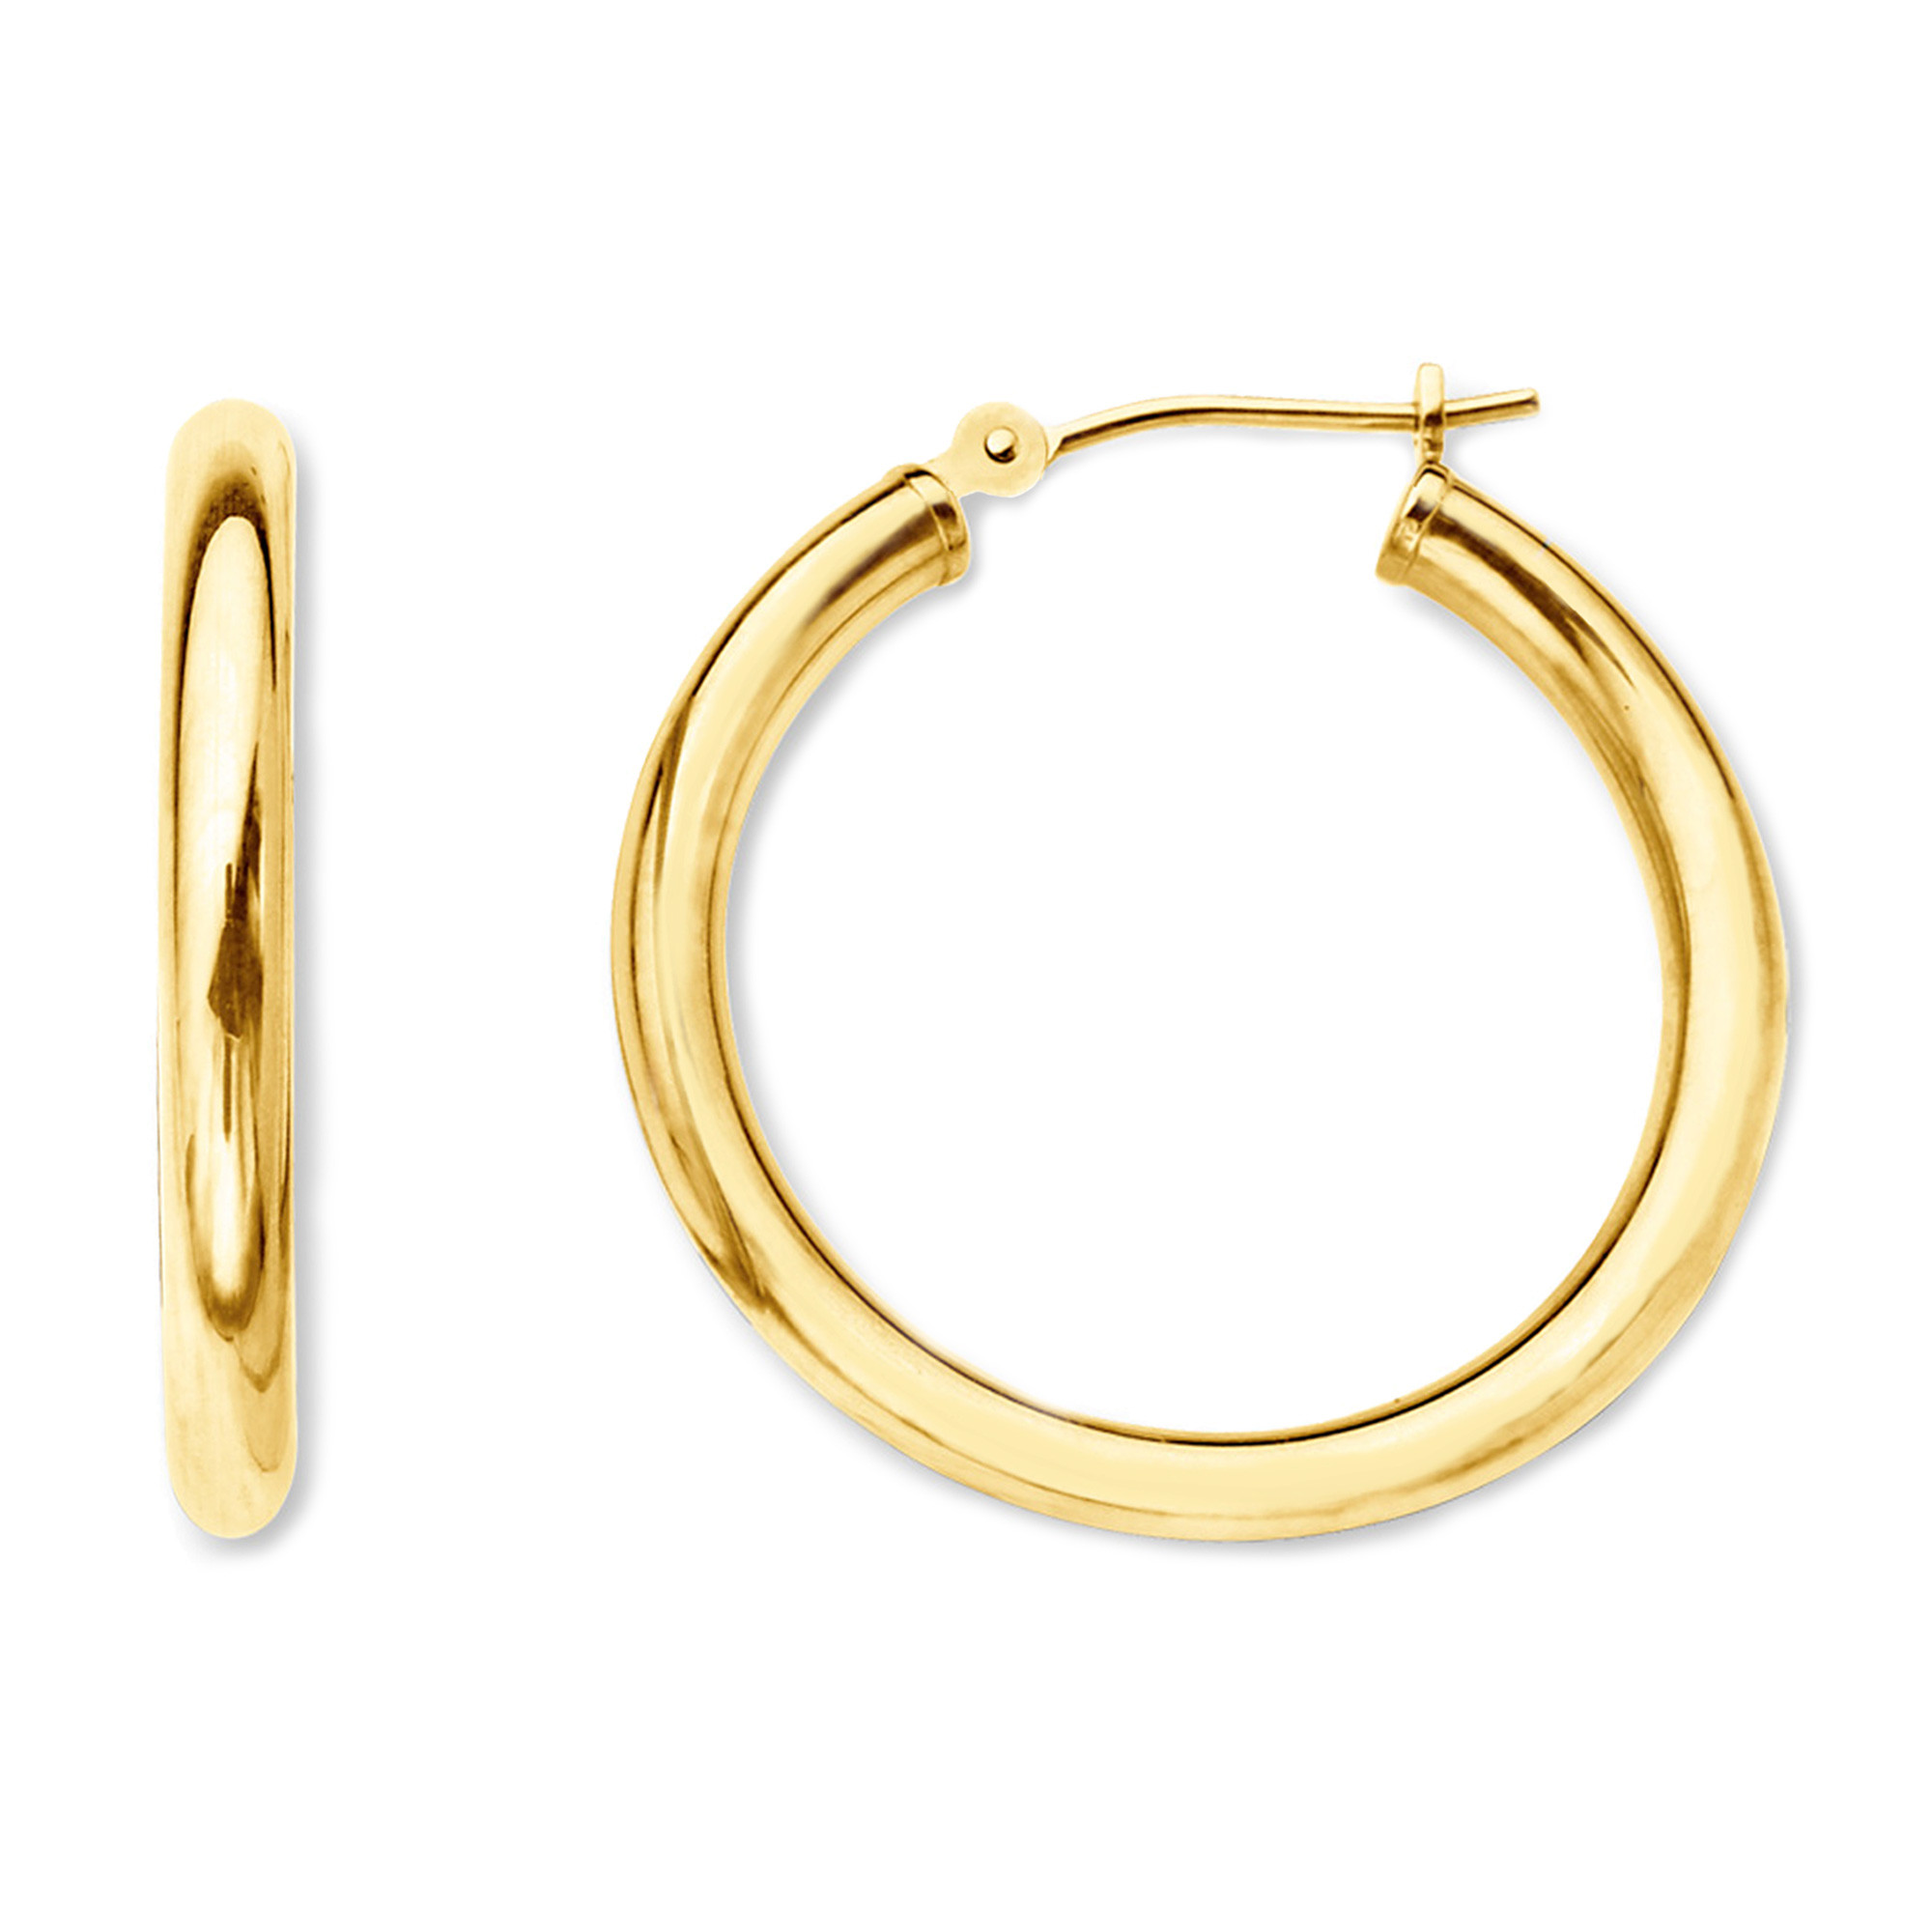 14K Yellow Gold 2MM Shiny Round Tube Hoop Earrings, 25mm Complete your jewelry collection with a gorgeous pair of 14K gold hoop earrings. Whether you prefer large bohemian look or tiny orbs, you'll discover plenty of sizes to match your style. These earrings have a secure snap post clasp making them easy to wear and remove. Earrings come in a  gift box making them ready to be gifted.